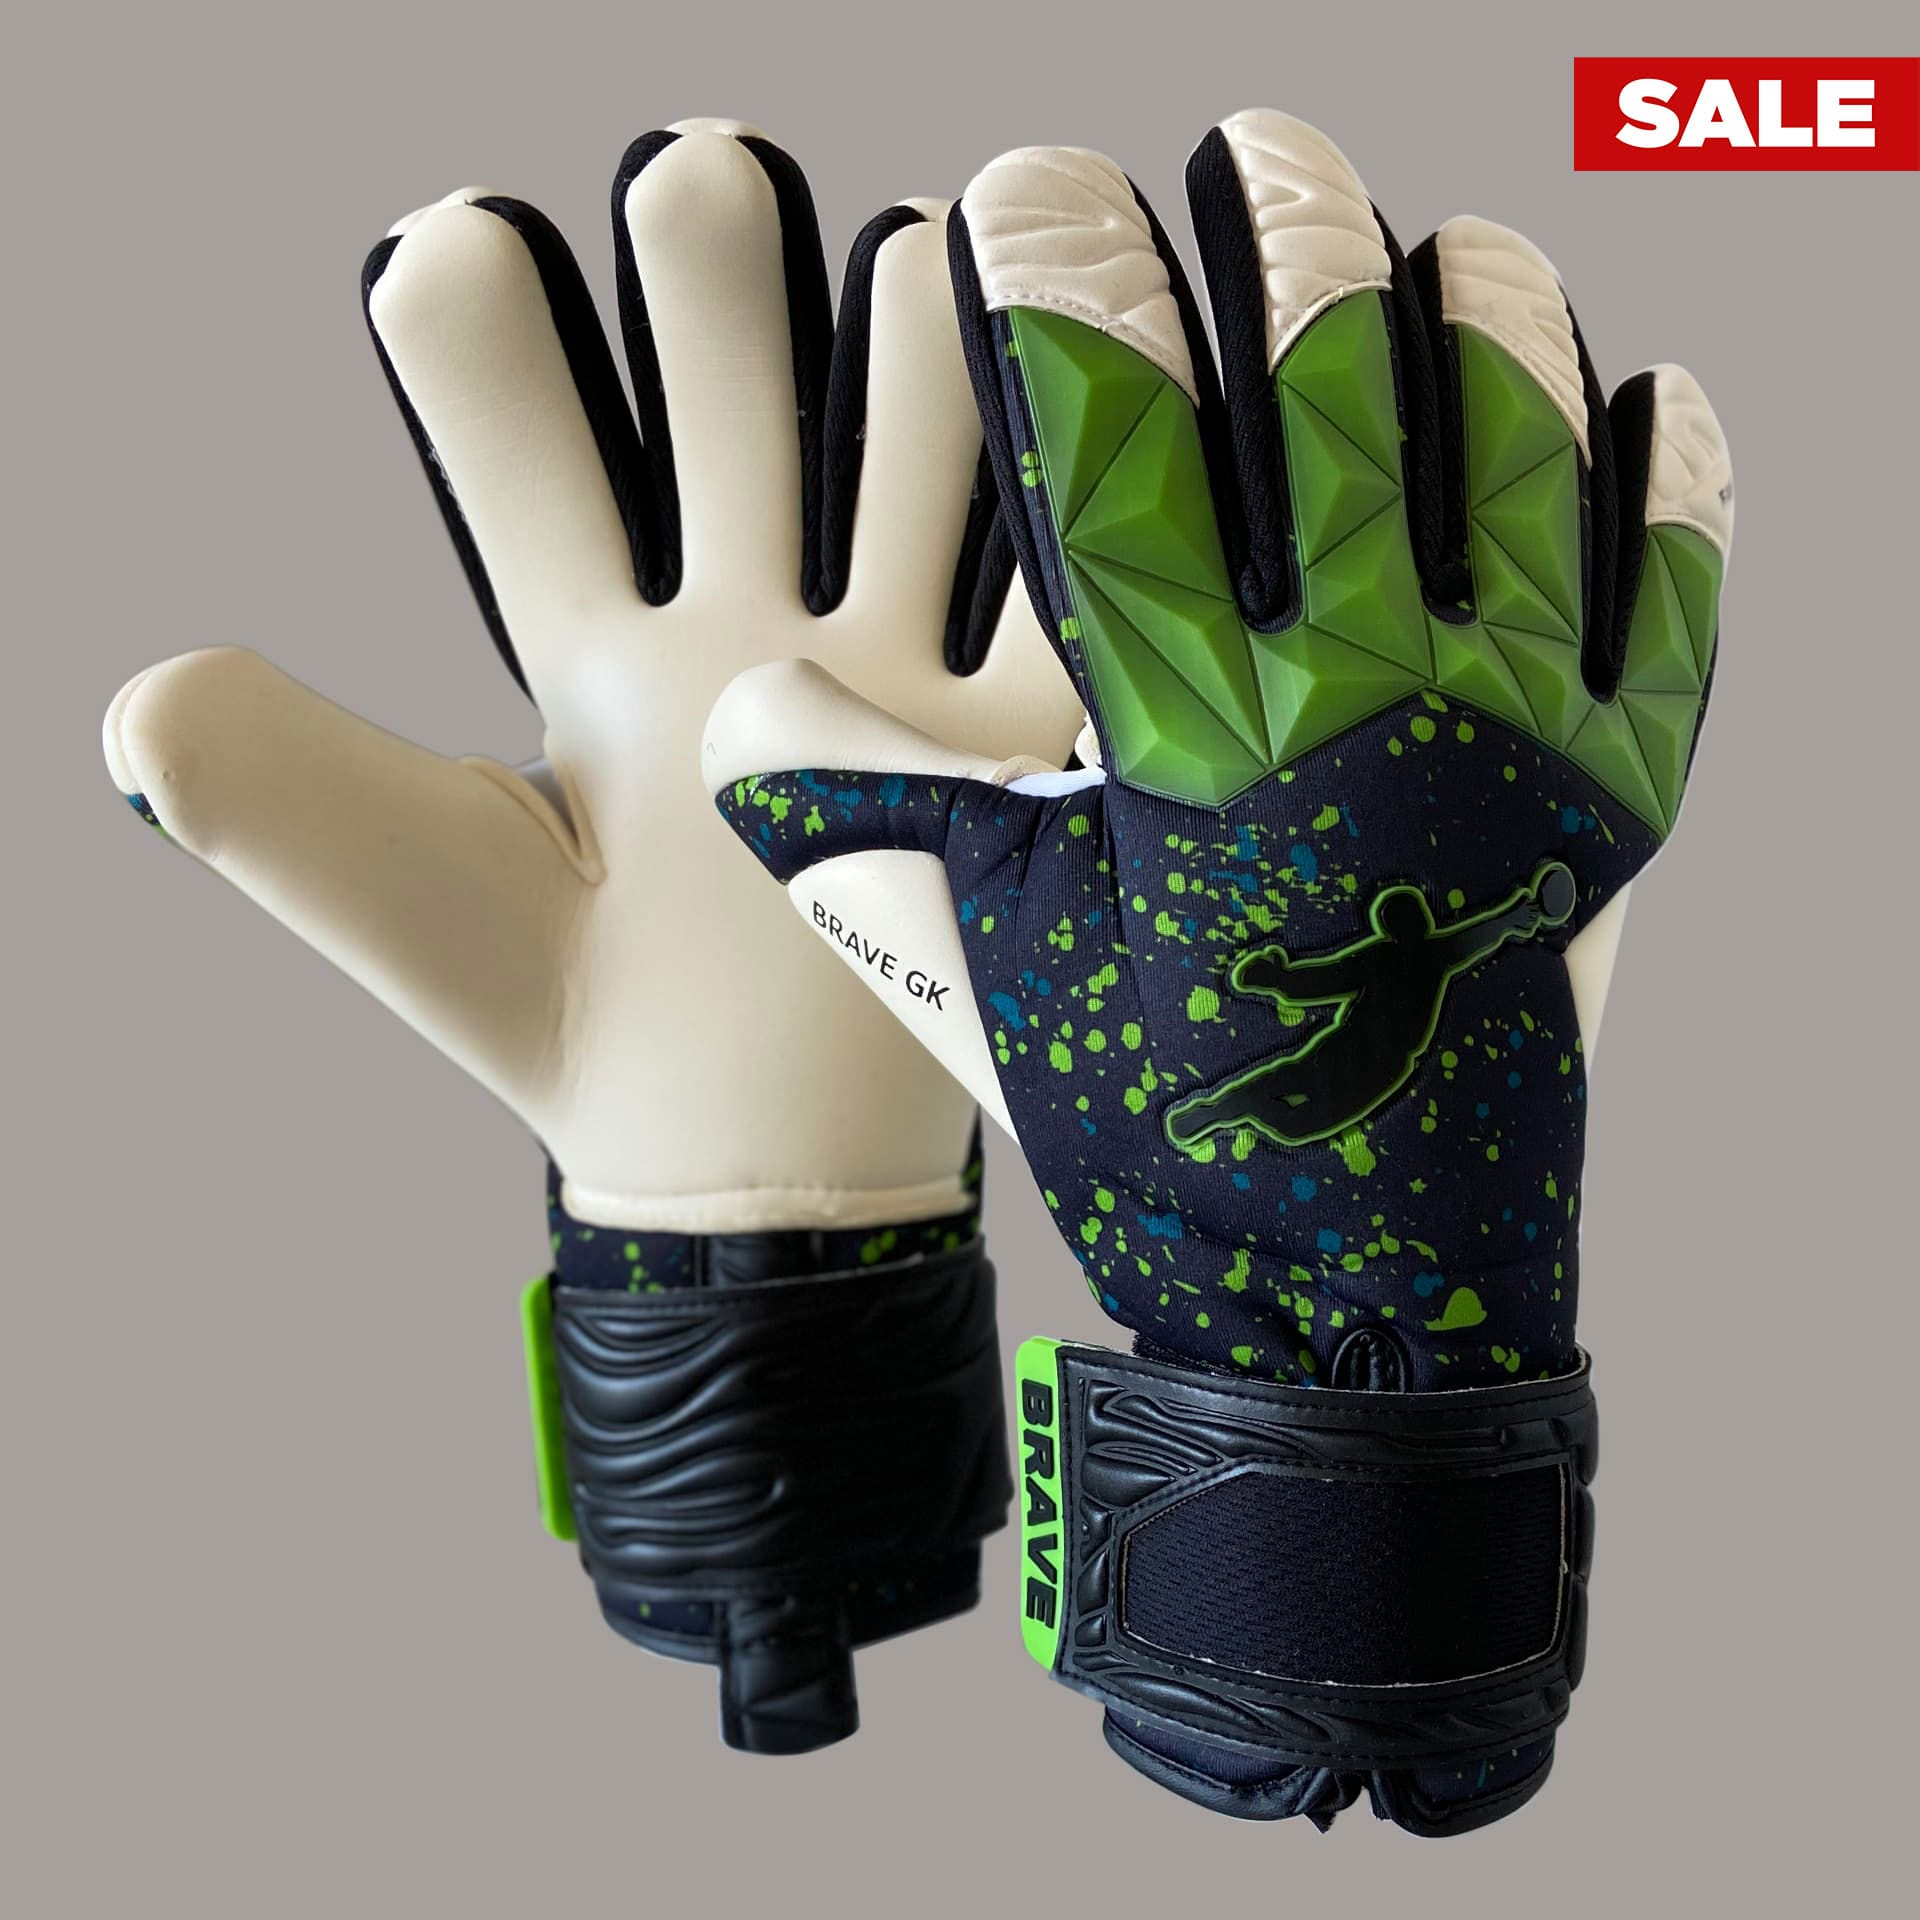 Brave GK Fury Green Paint Drops -0-Brave GK